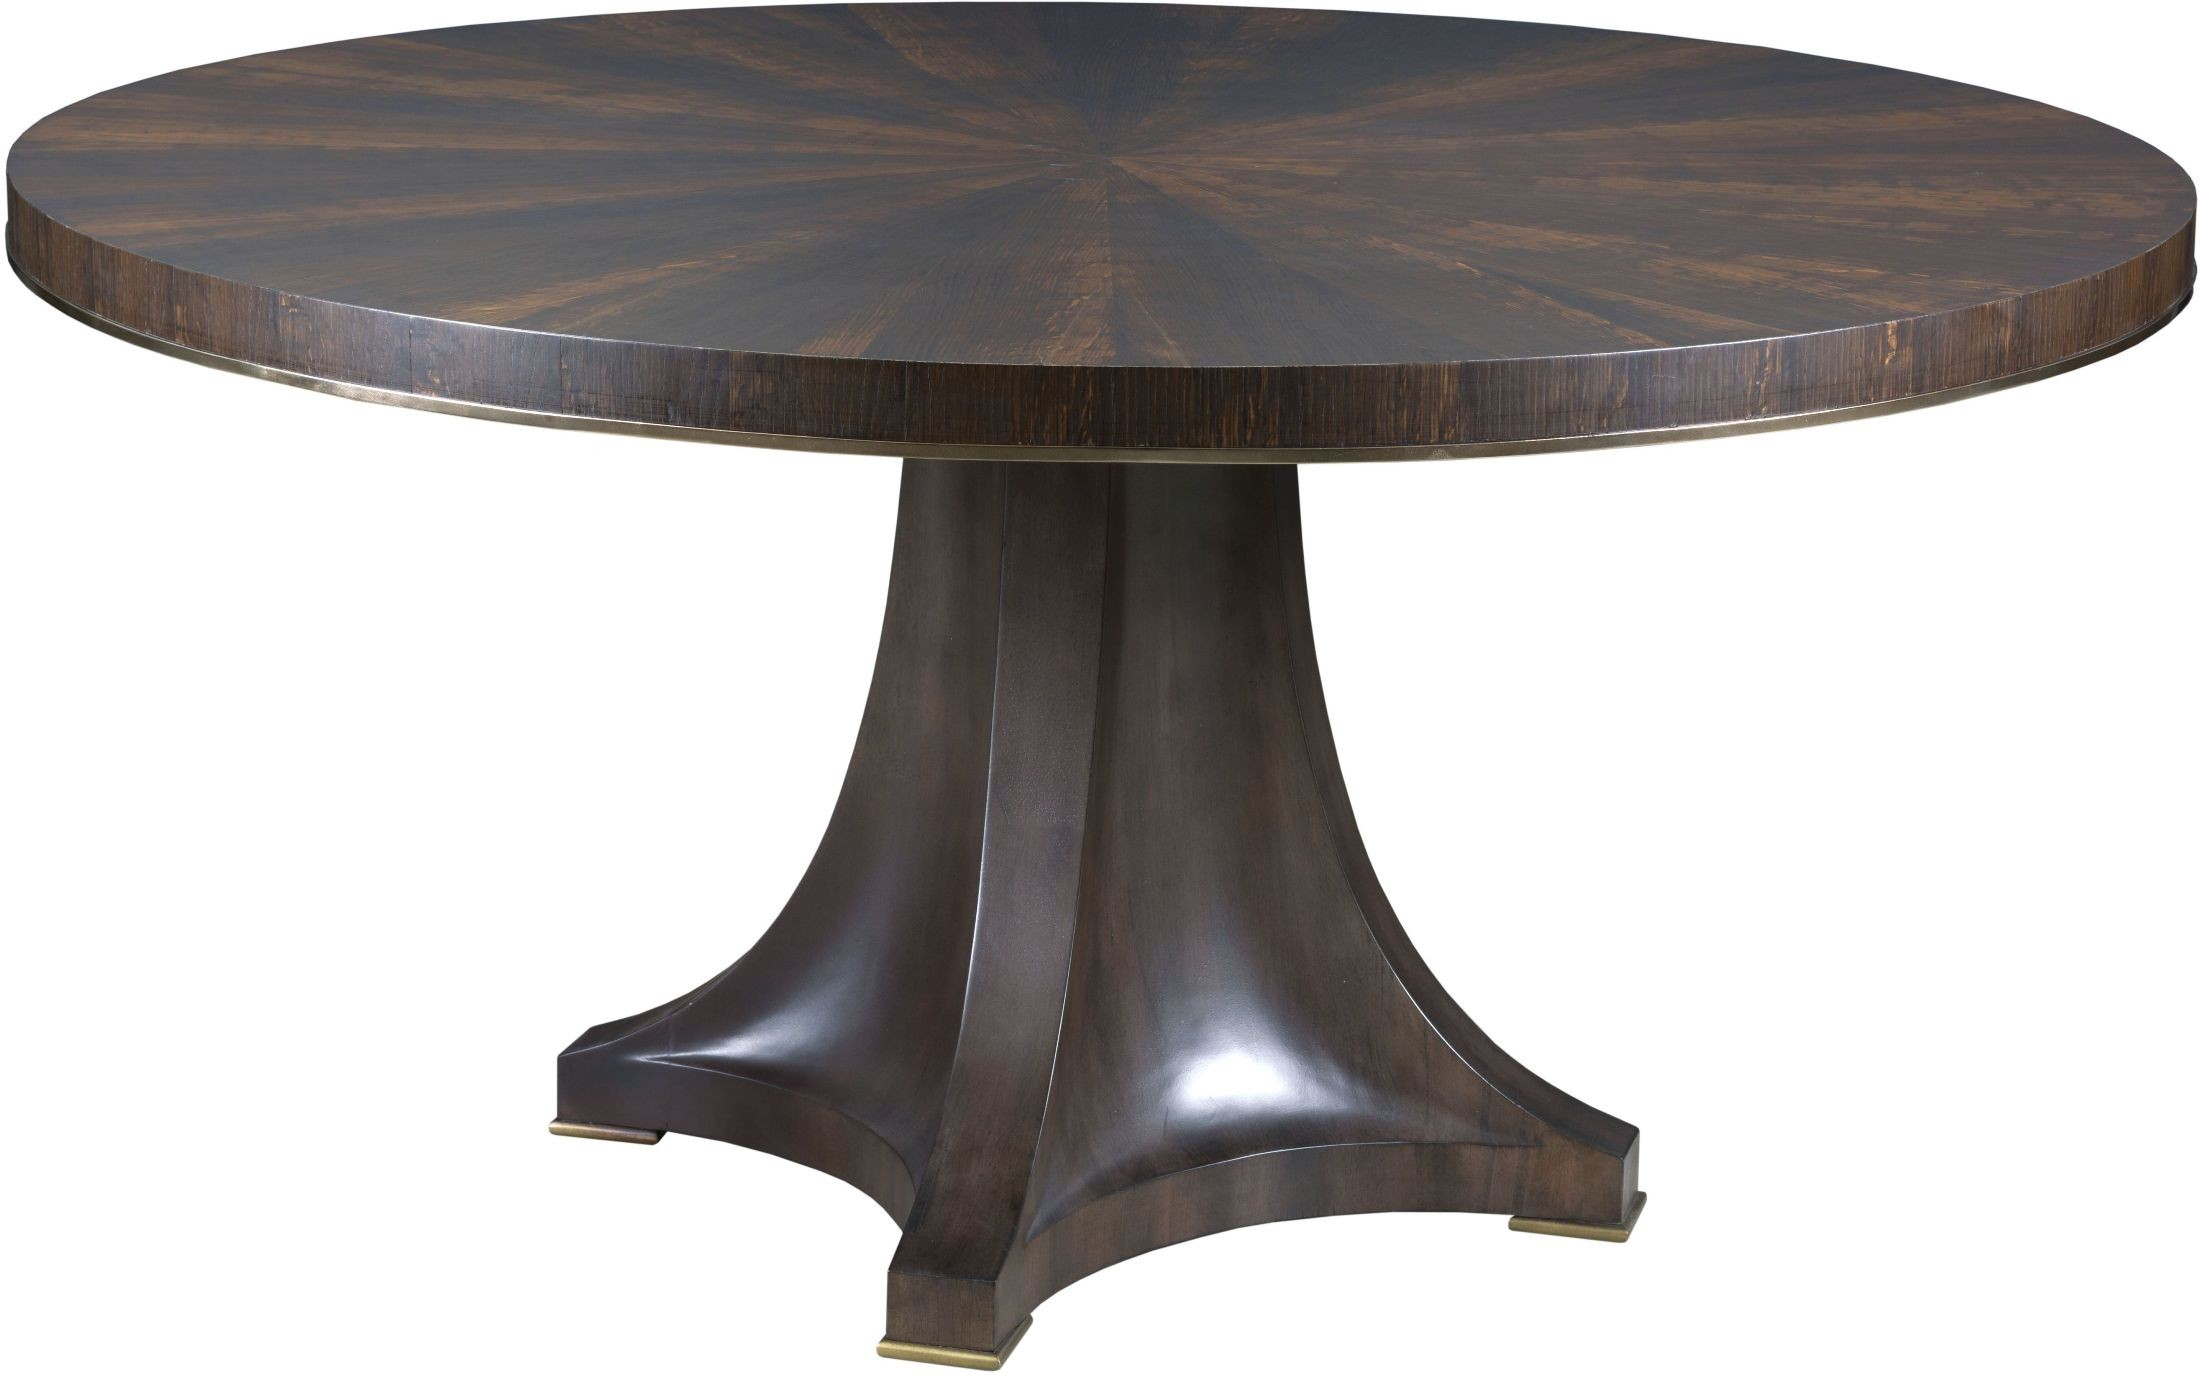 ad modern organics smokey quartz camby round dining table. Black Bedroom Furniture Sets. Home Design Ideas